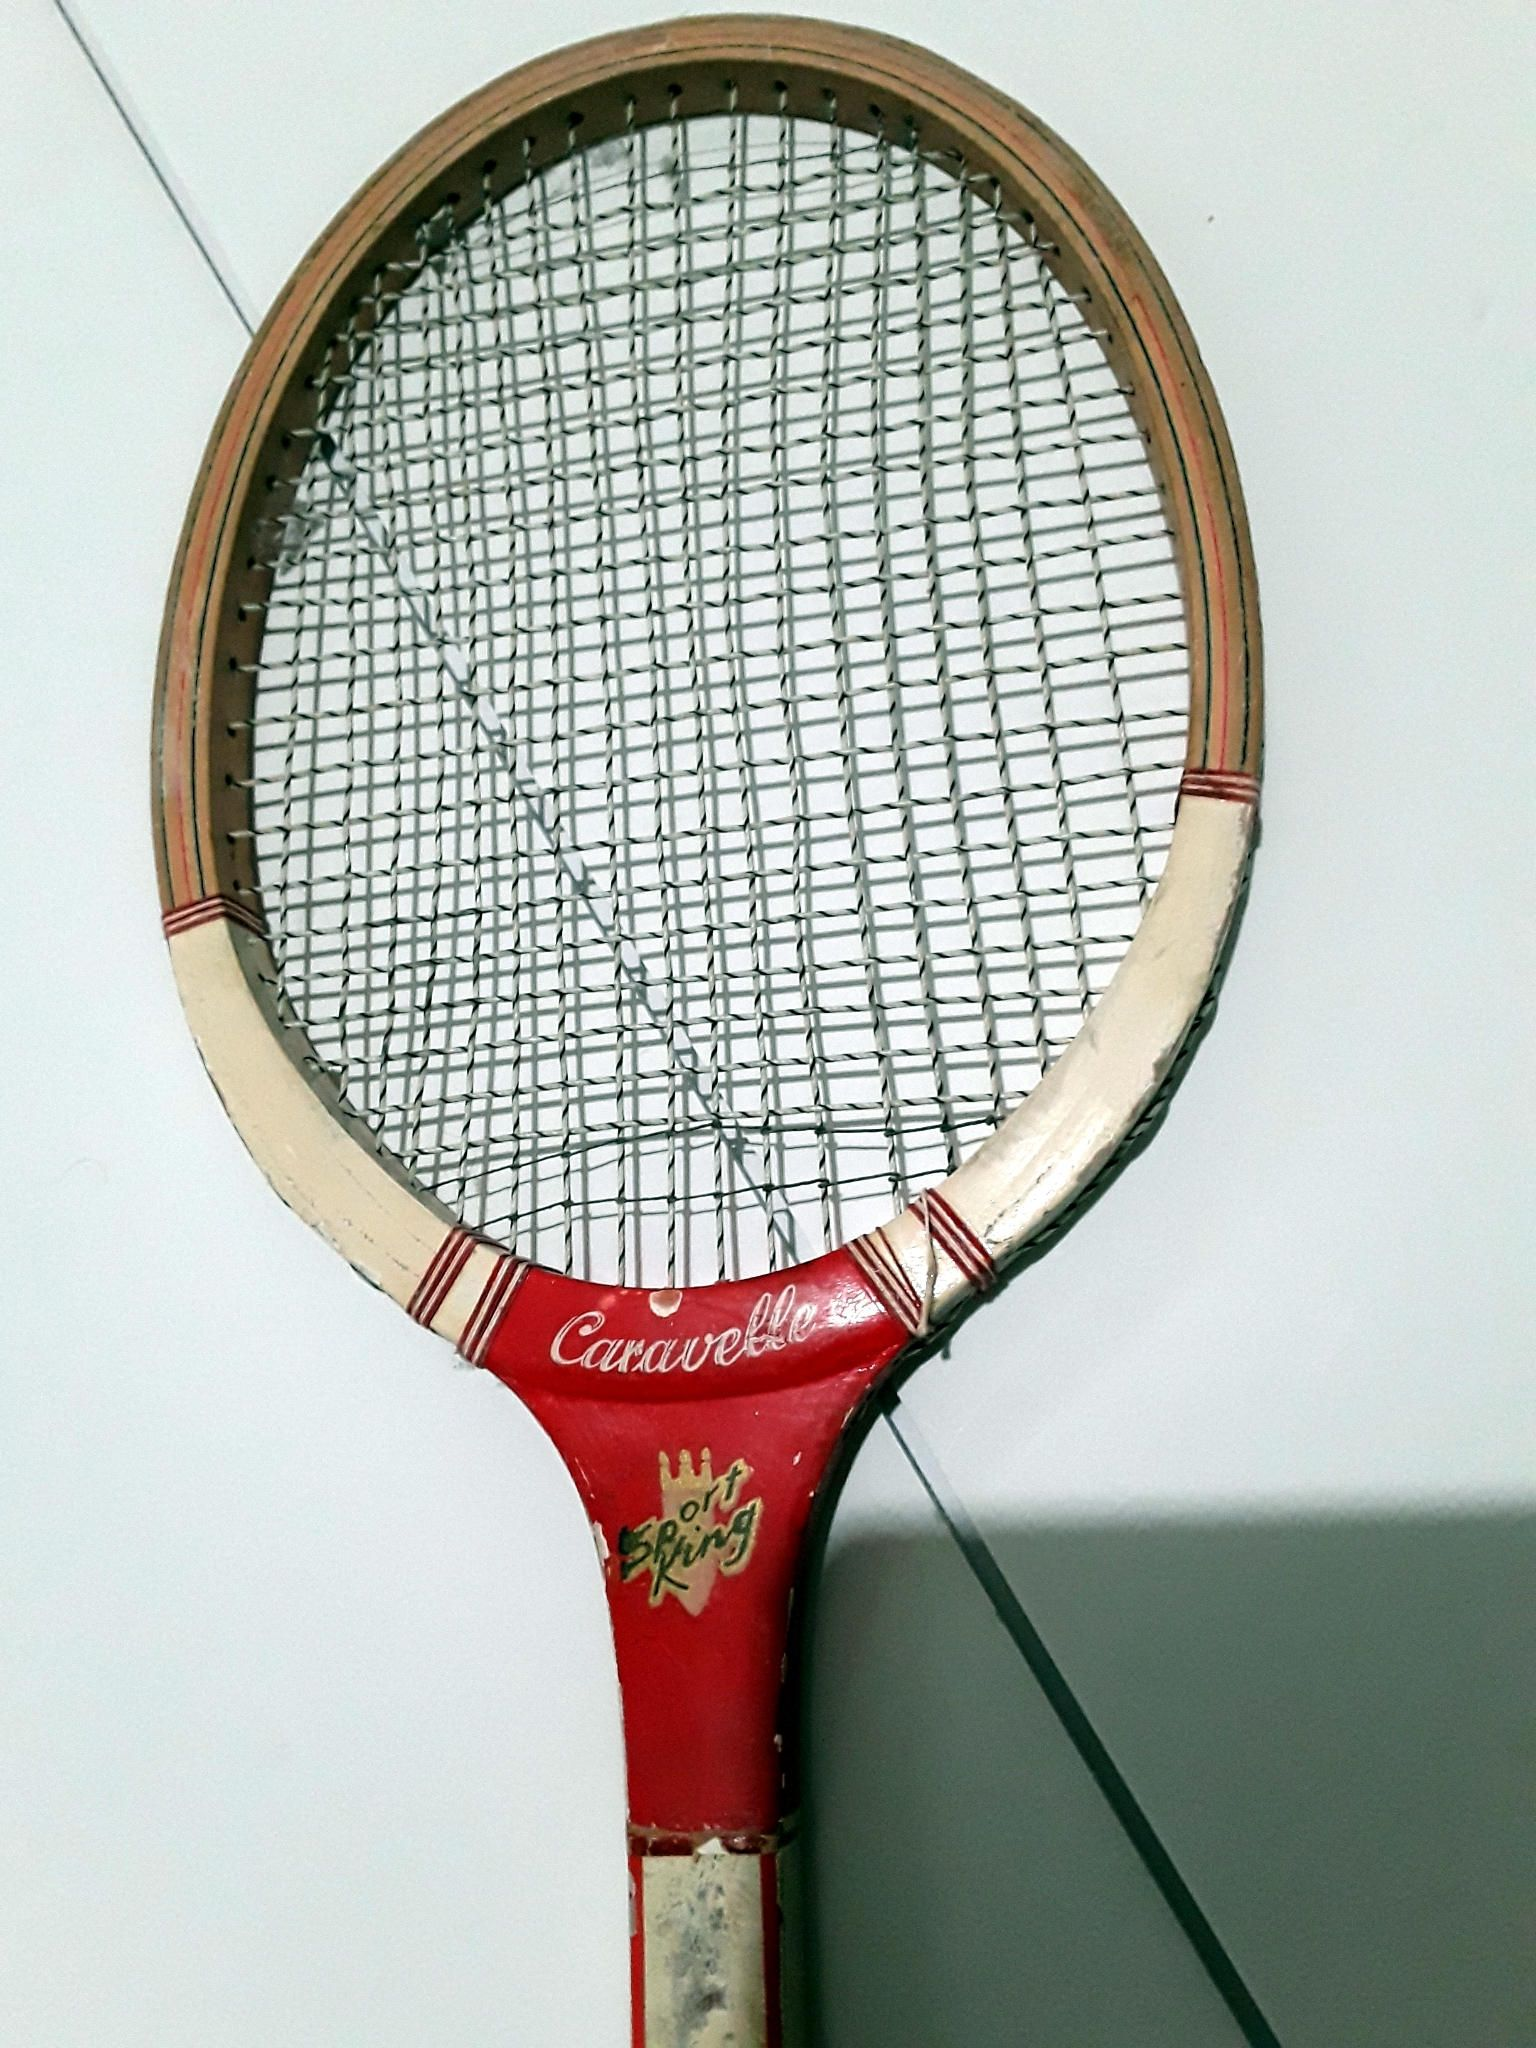 Vintage Rsl Caravelle Wood Tennis Racquet 60s 70s Made In Pakistan Sport King By Fchoicevintage On Etsy